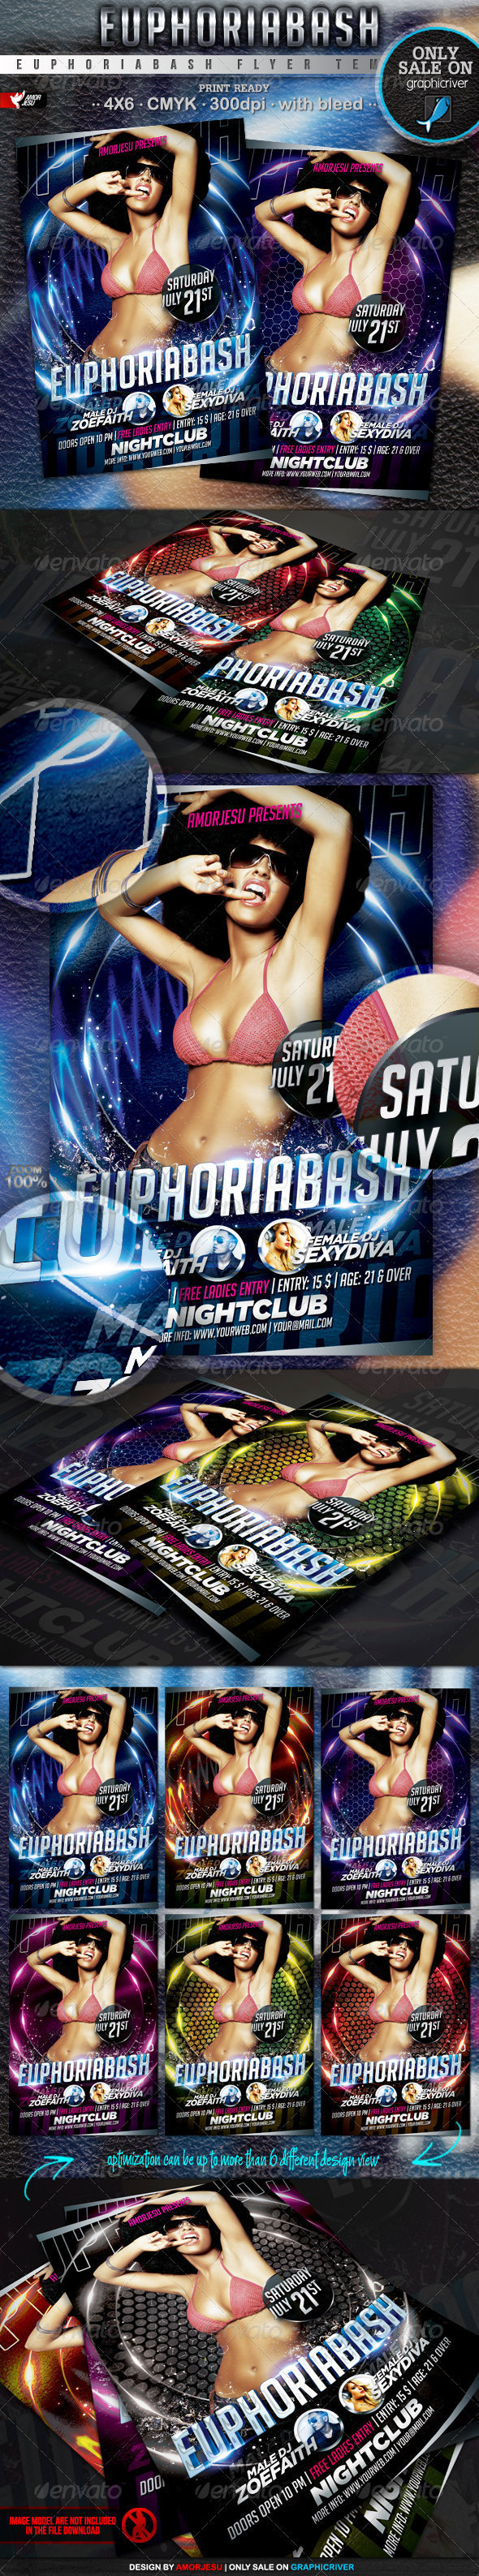 Euphoria Bash Flyer Template - Events Flyers